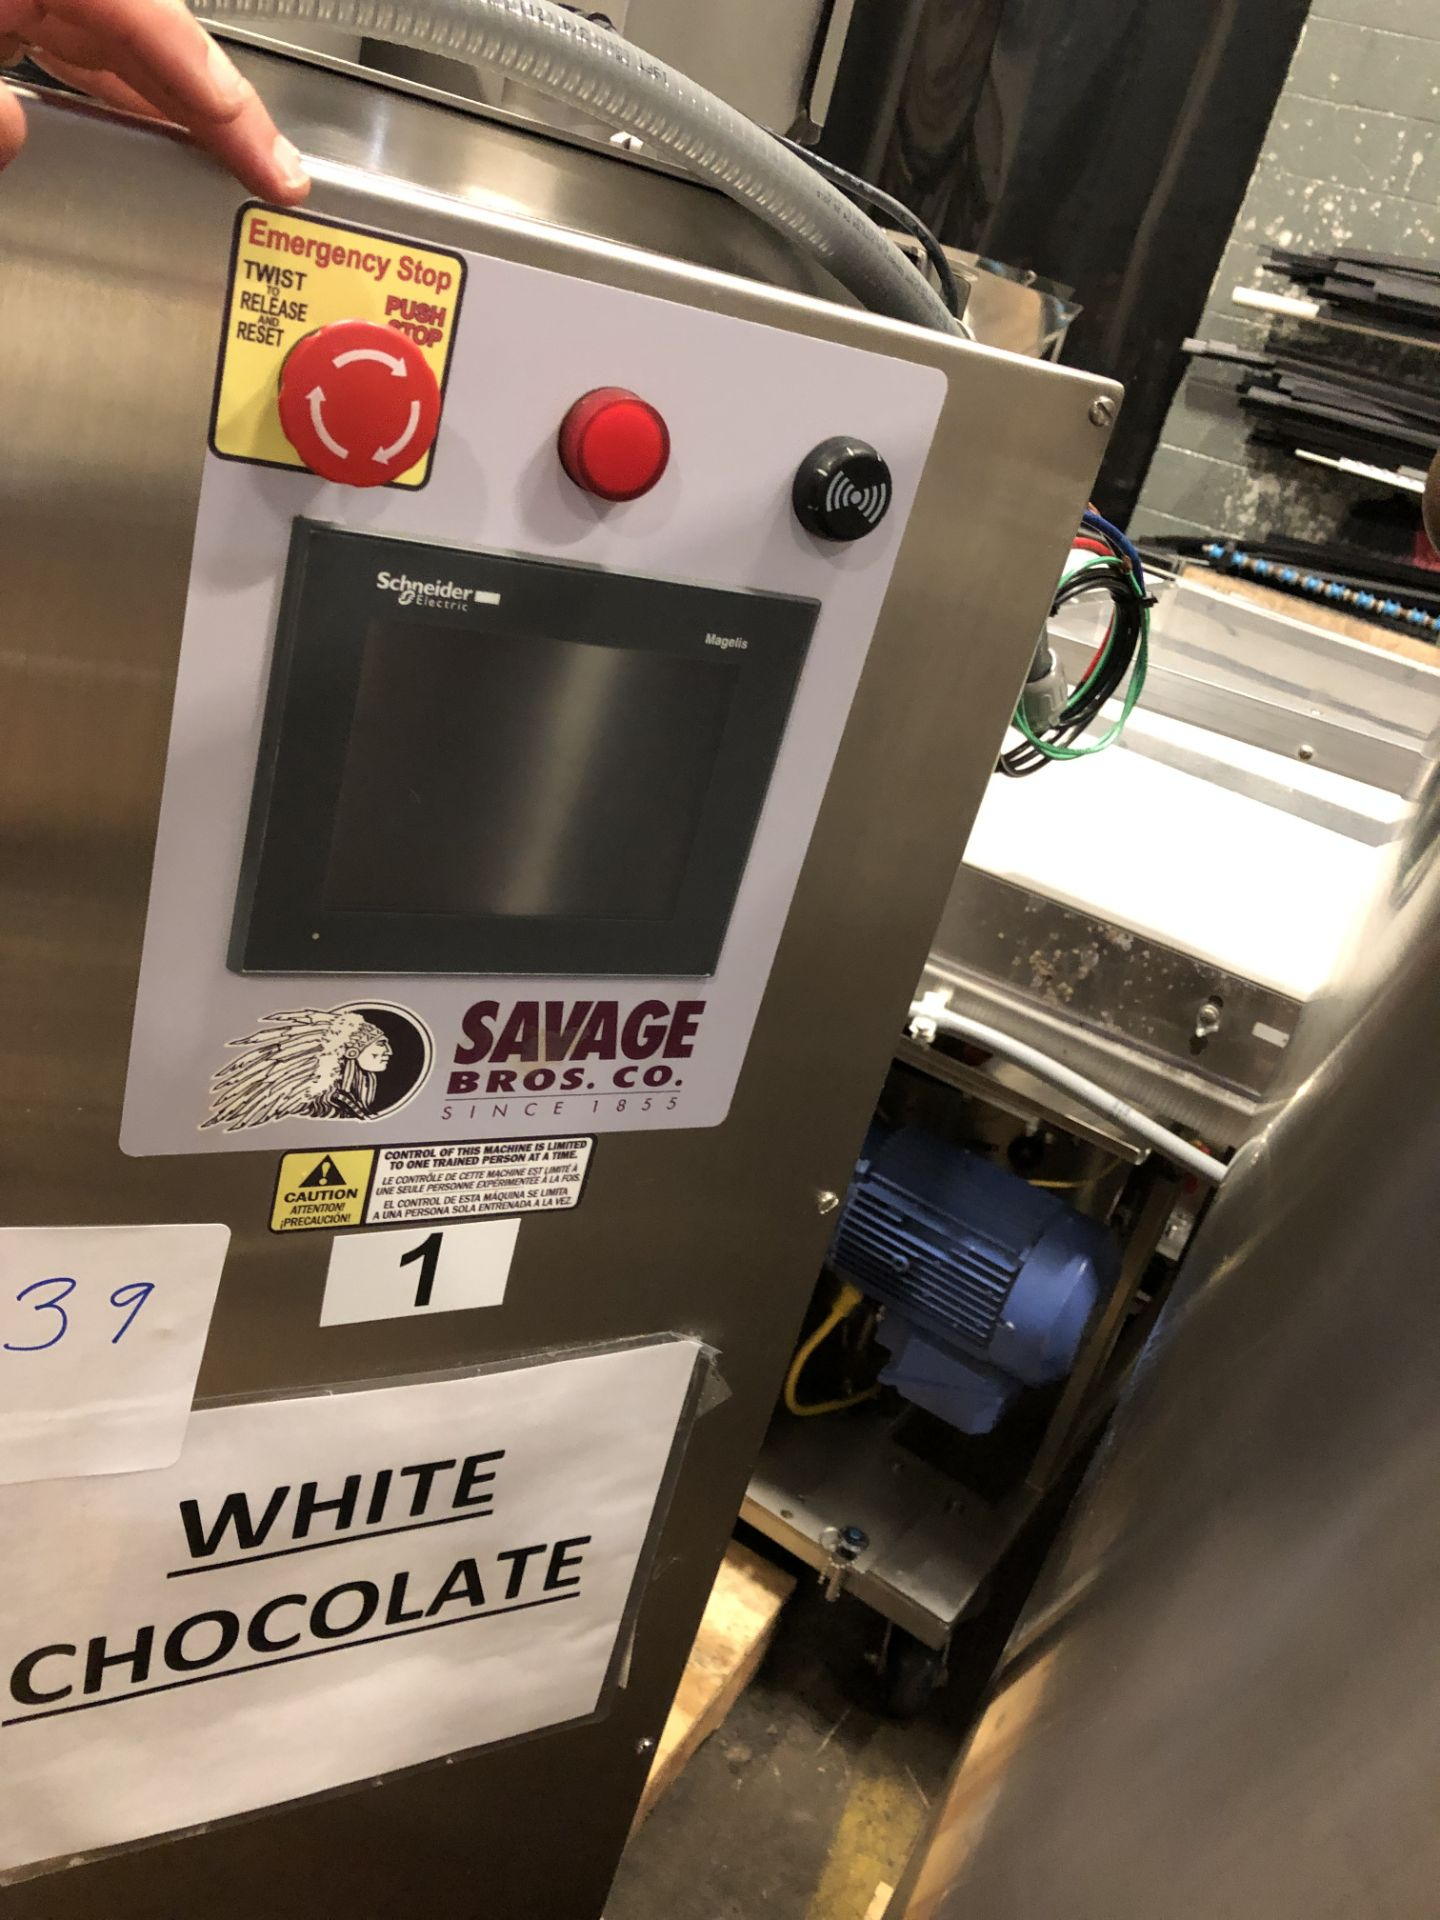 Lot 41 - Savage Stainless Steel 1250-lb Melter, model 0974-36, High Temperature model for melting chocolate